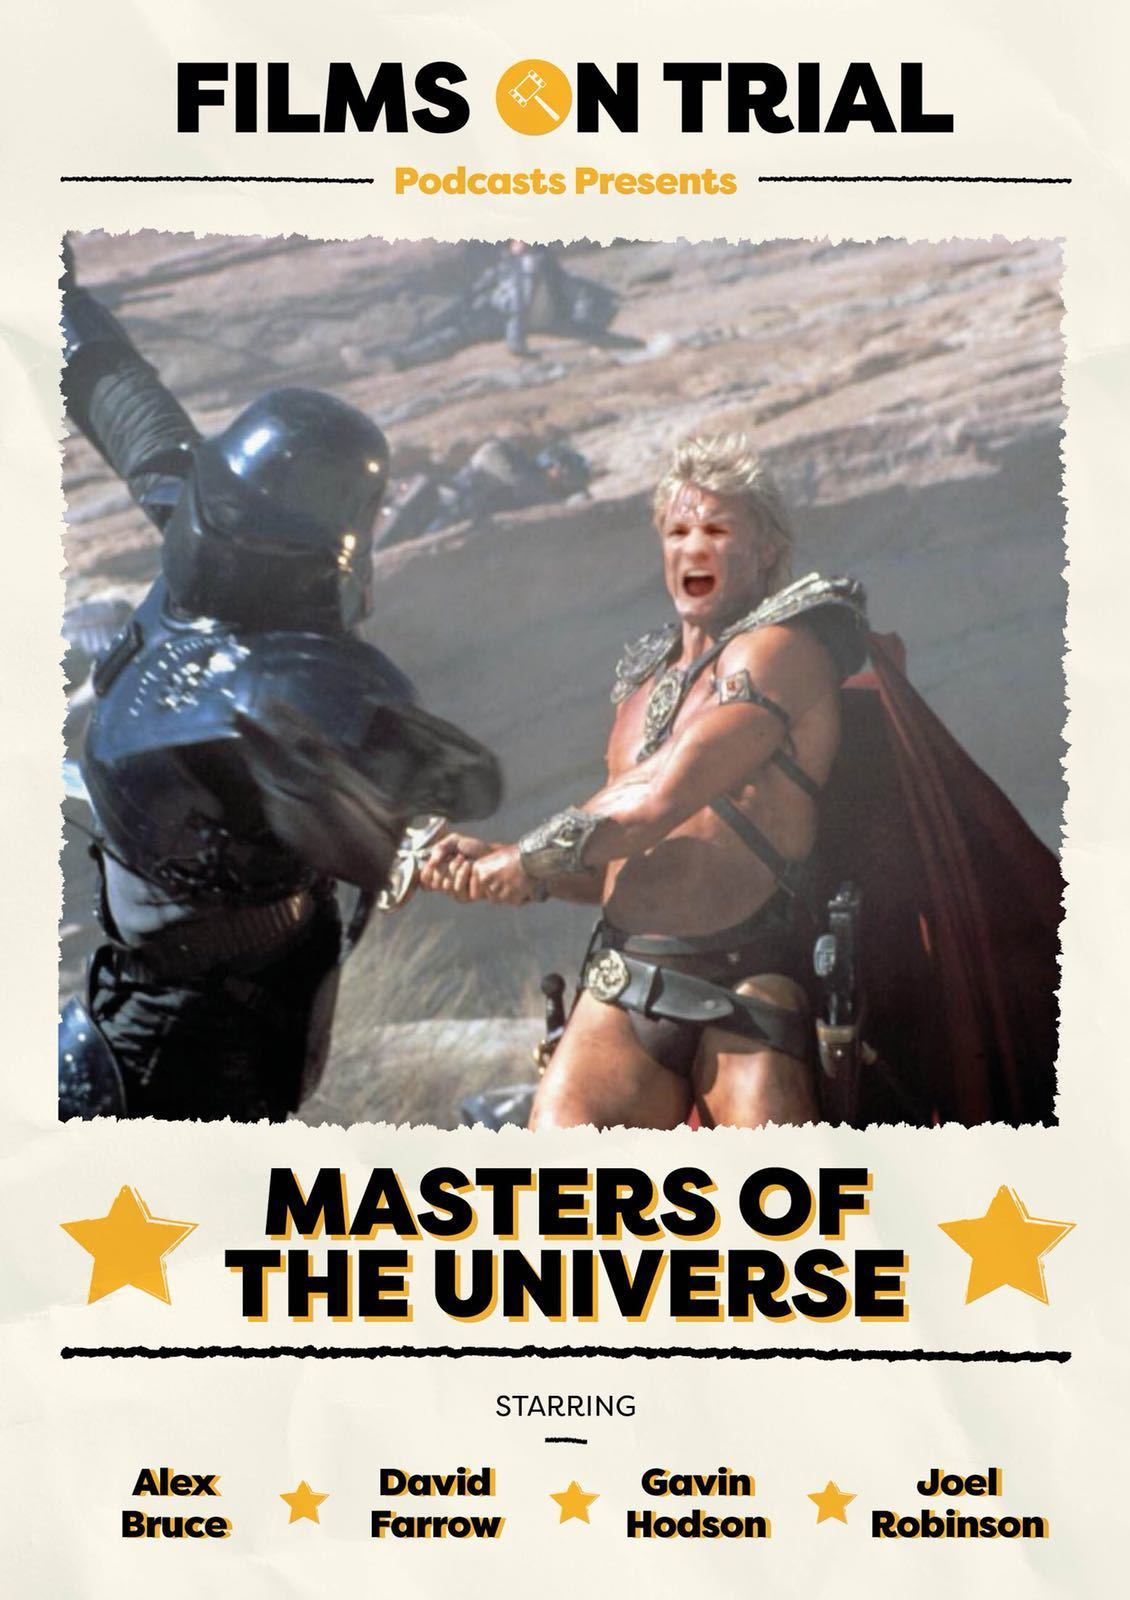 Ep 32 - Masters of the Universe